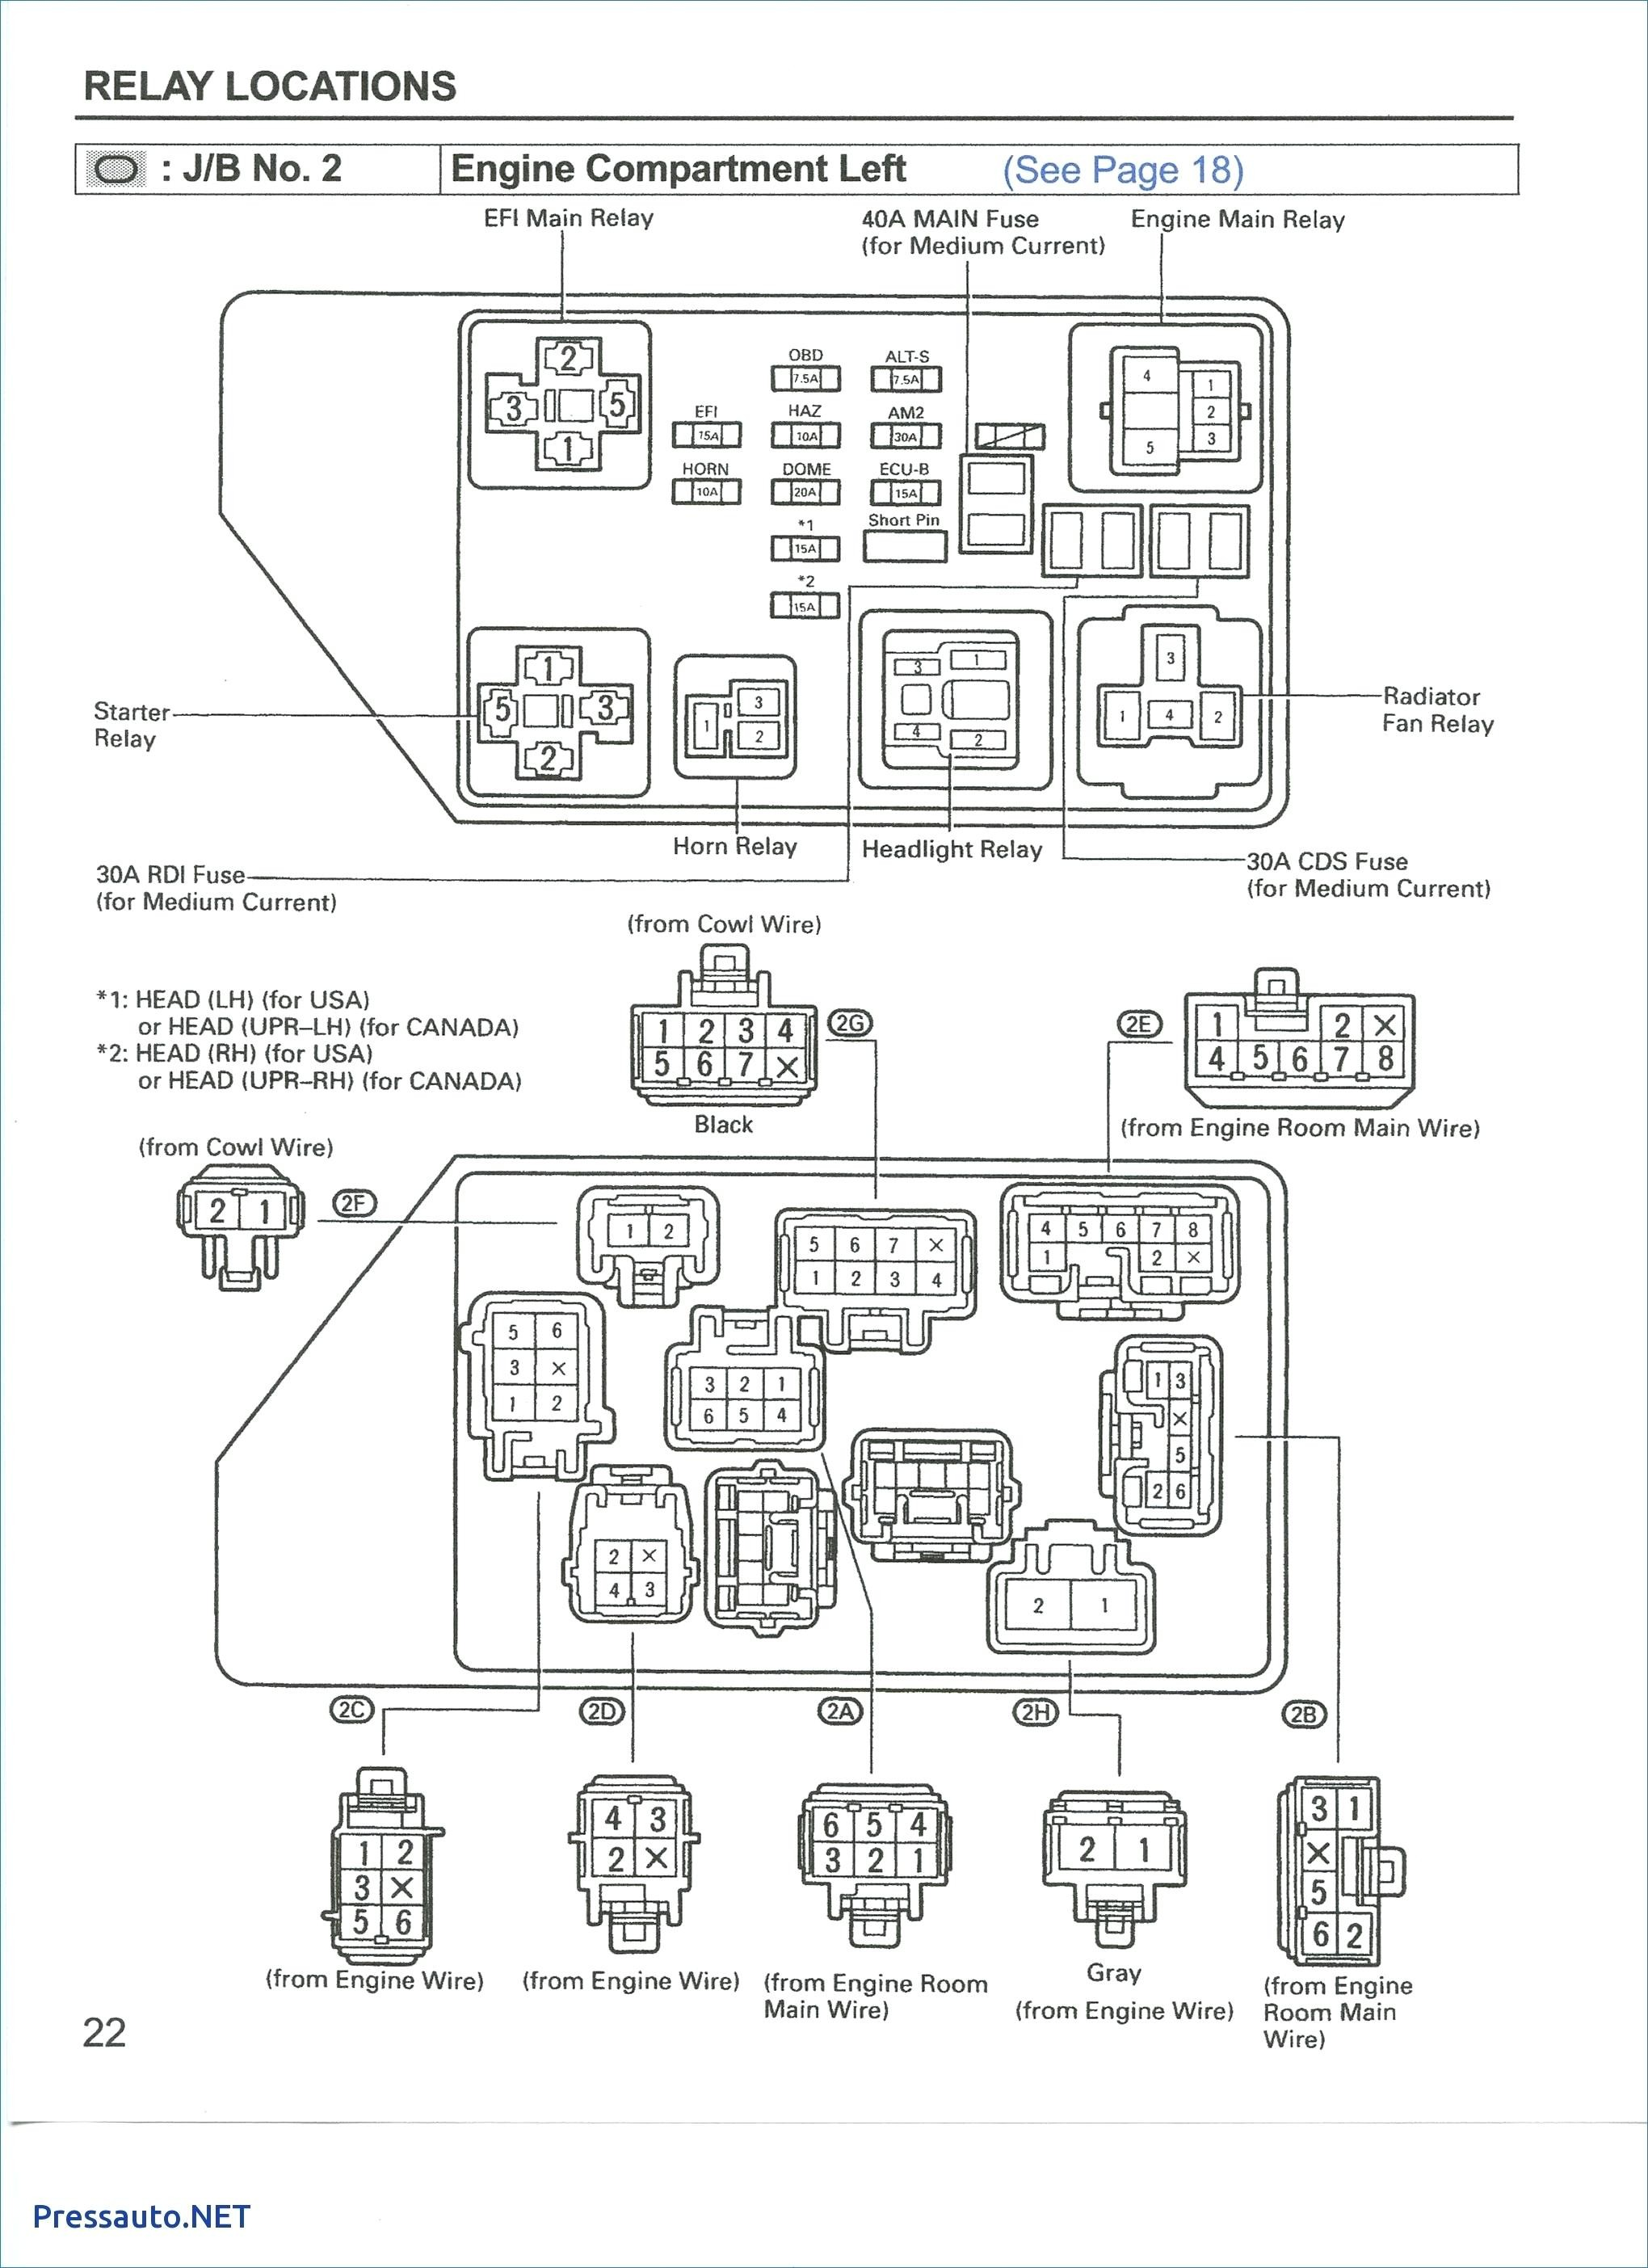 Toyota Celica Engine Diagram 1991 toyota Mr2 Fuse Box Wiring Diagram Of Toyota Celica Engine Diagram toyota 7afe Engine Diagram Wiring Diagram Used